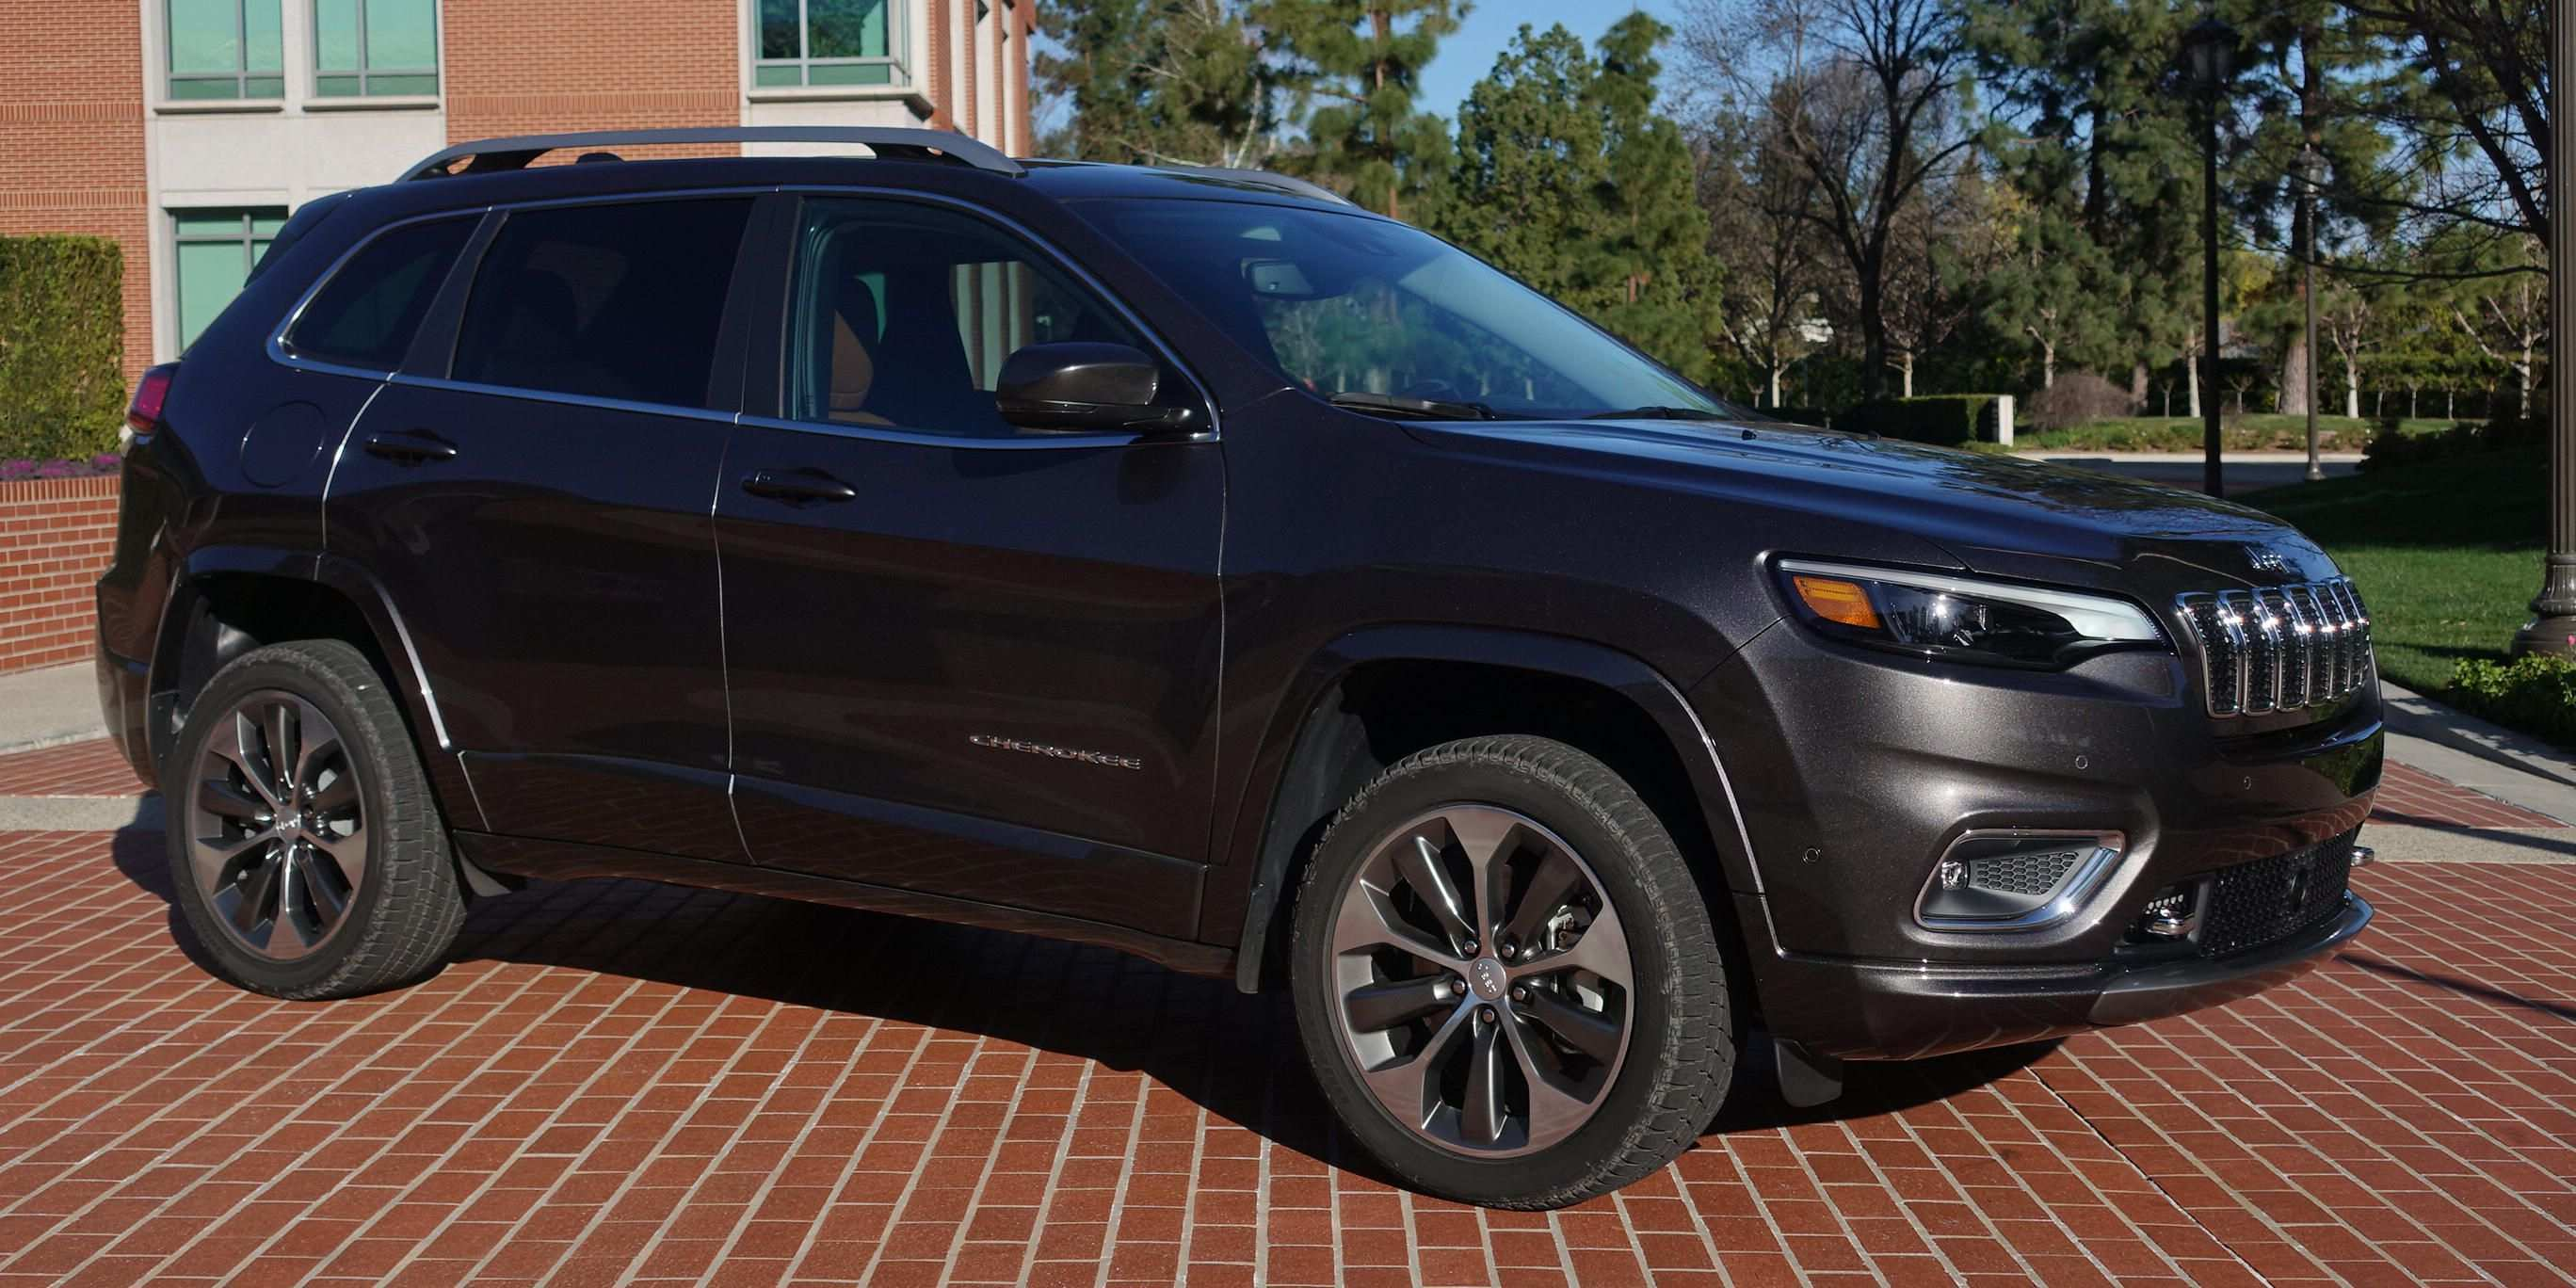 59 All New New 2019 Jeep Cherokee Picture Release Date And Review Rumors with New 2019 Jeep Cherokee Picture Release Date And Review